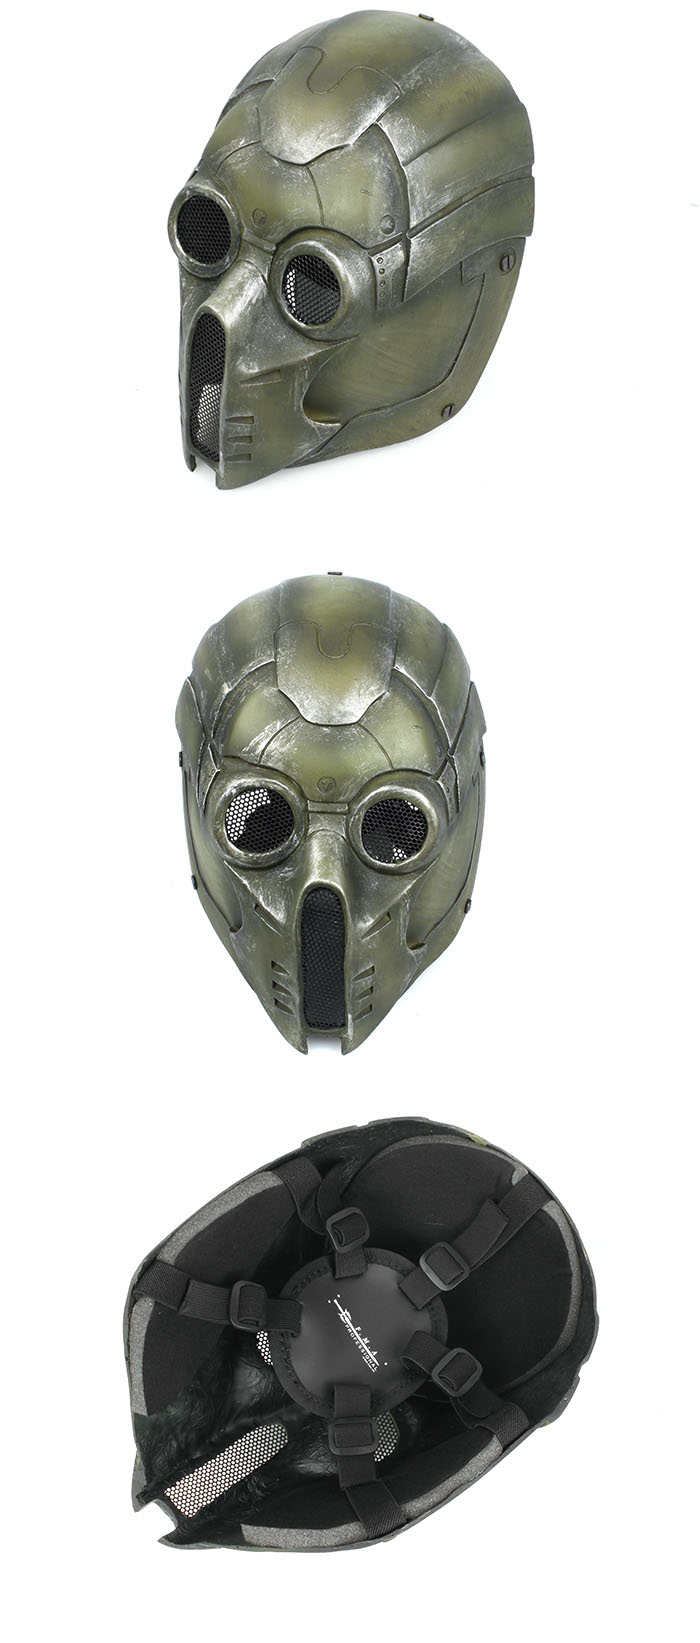 Masques ebairsoft FMA%20Wire%20Mesh%20Green%20monster%20Mask%20tb645%20a